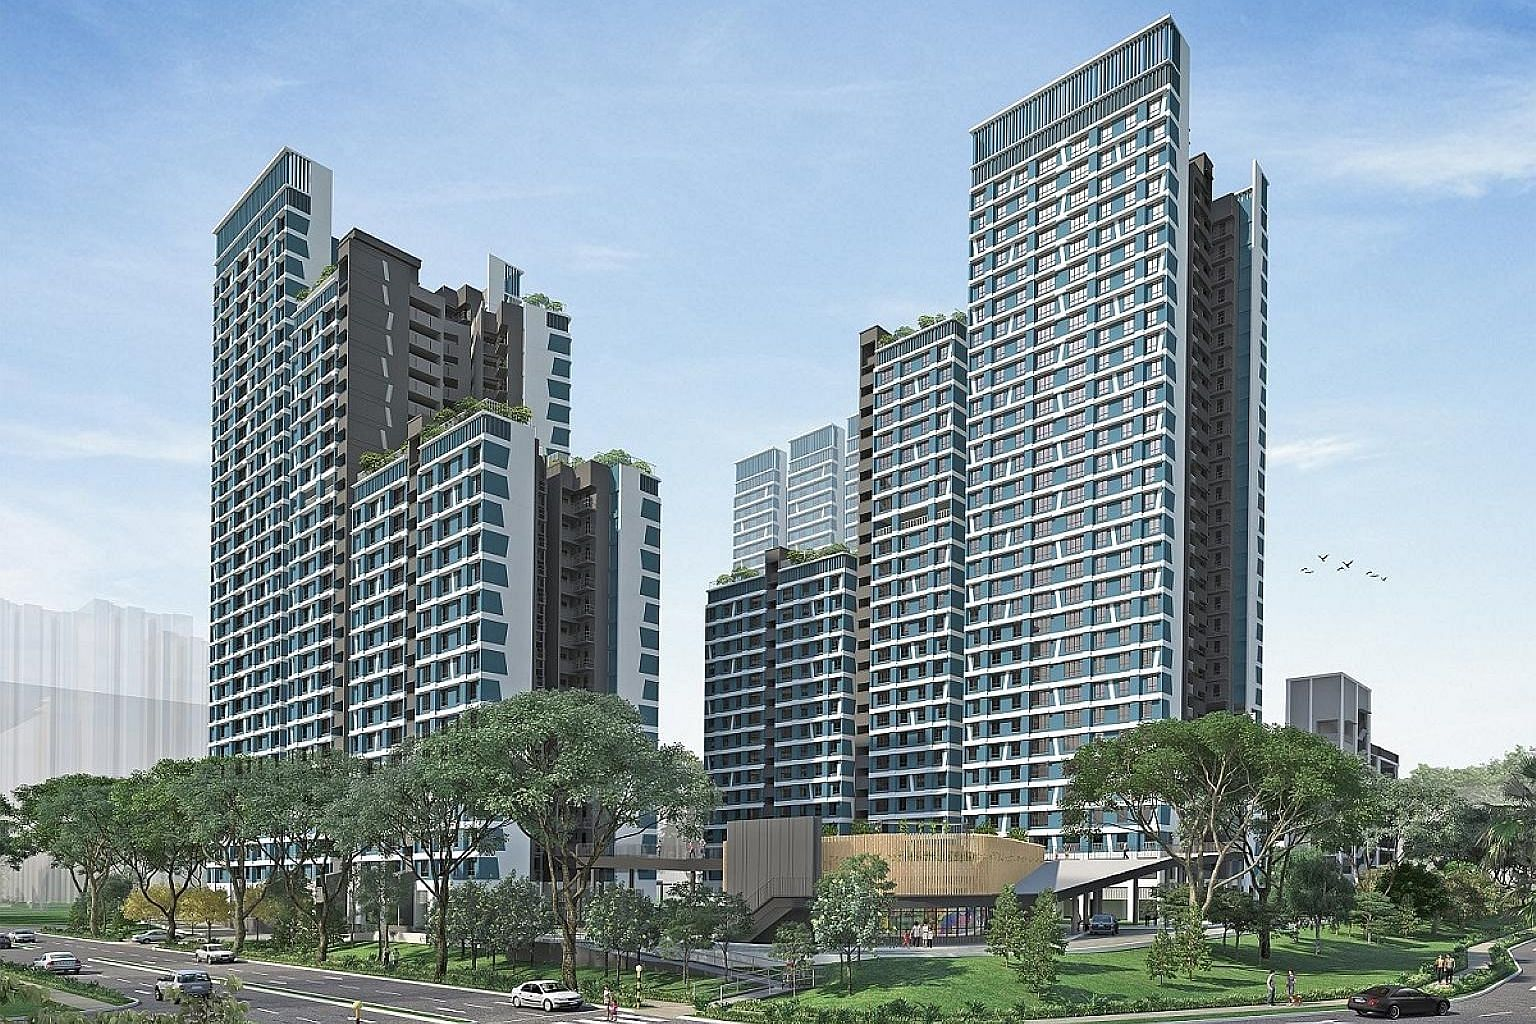 Kim Keat Ripples will have 708 units in two-room flexi and four-room flat types. Prices start from $90,000, excluding grants, for a two-room flexi flat.